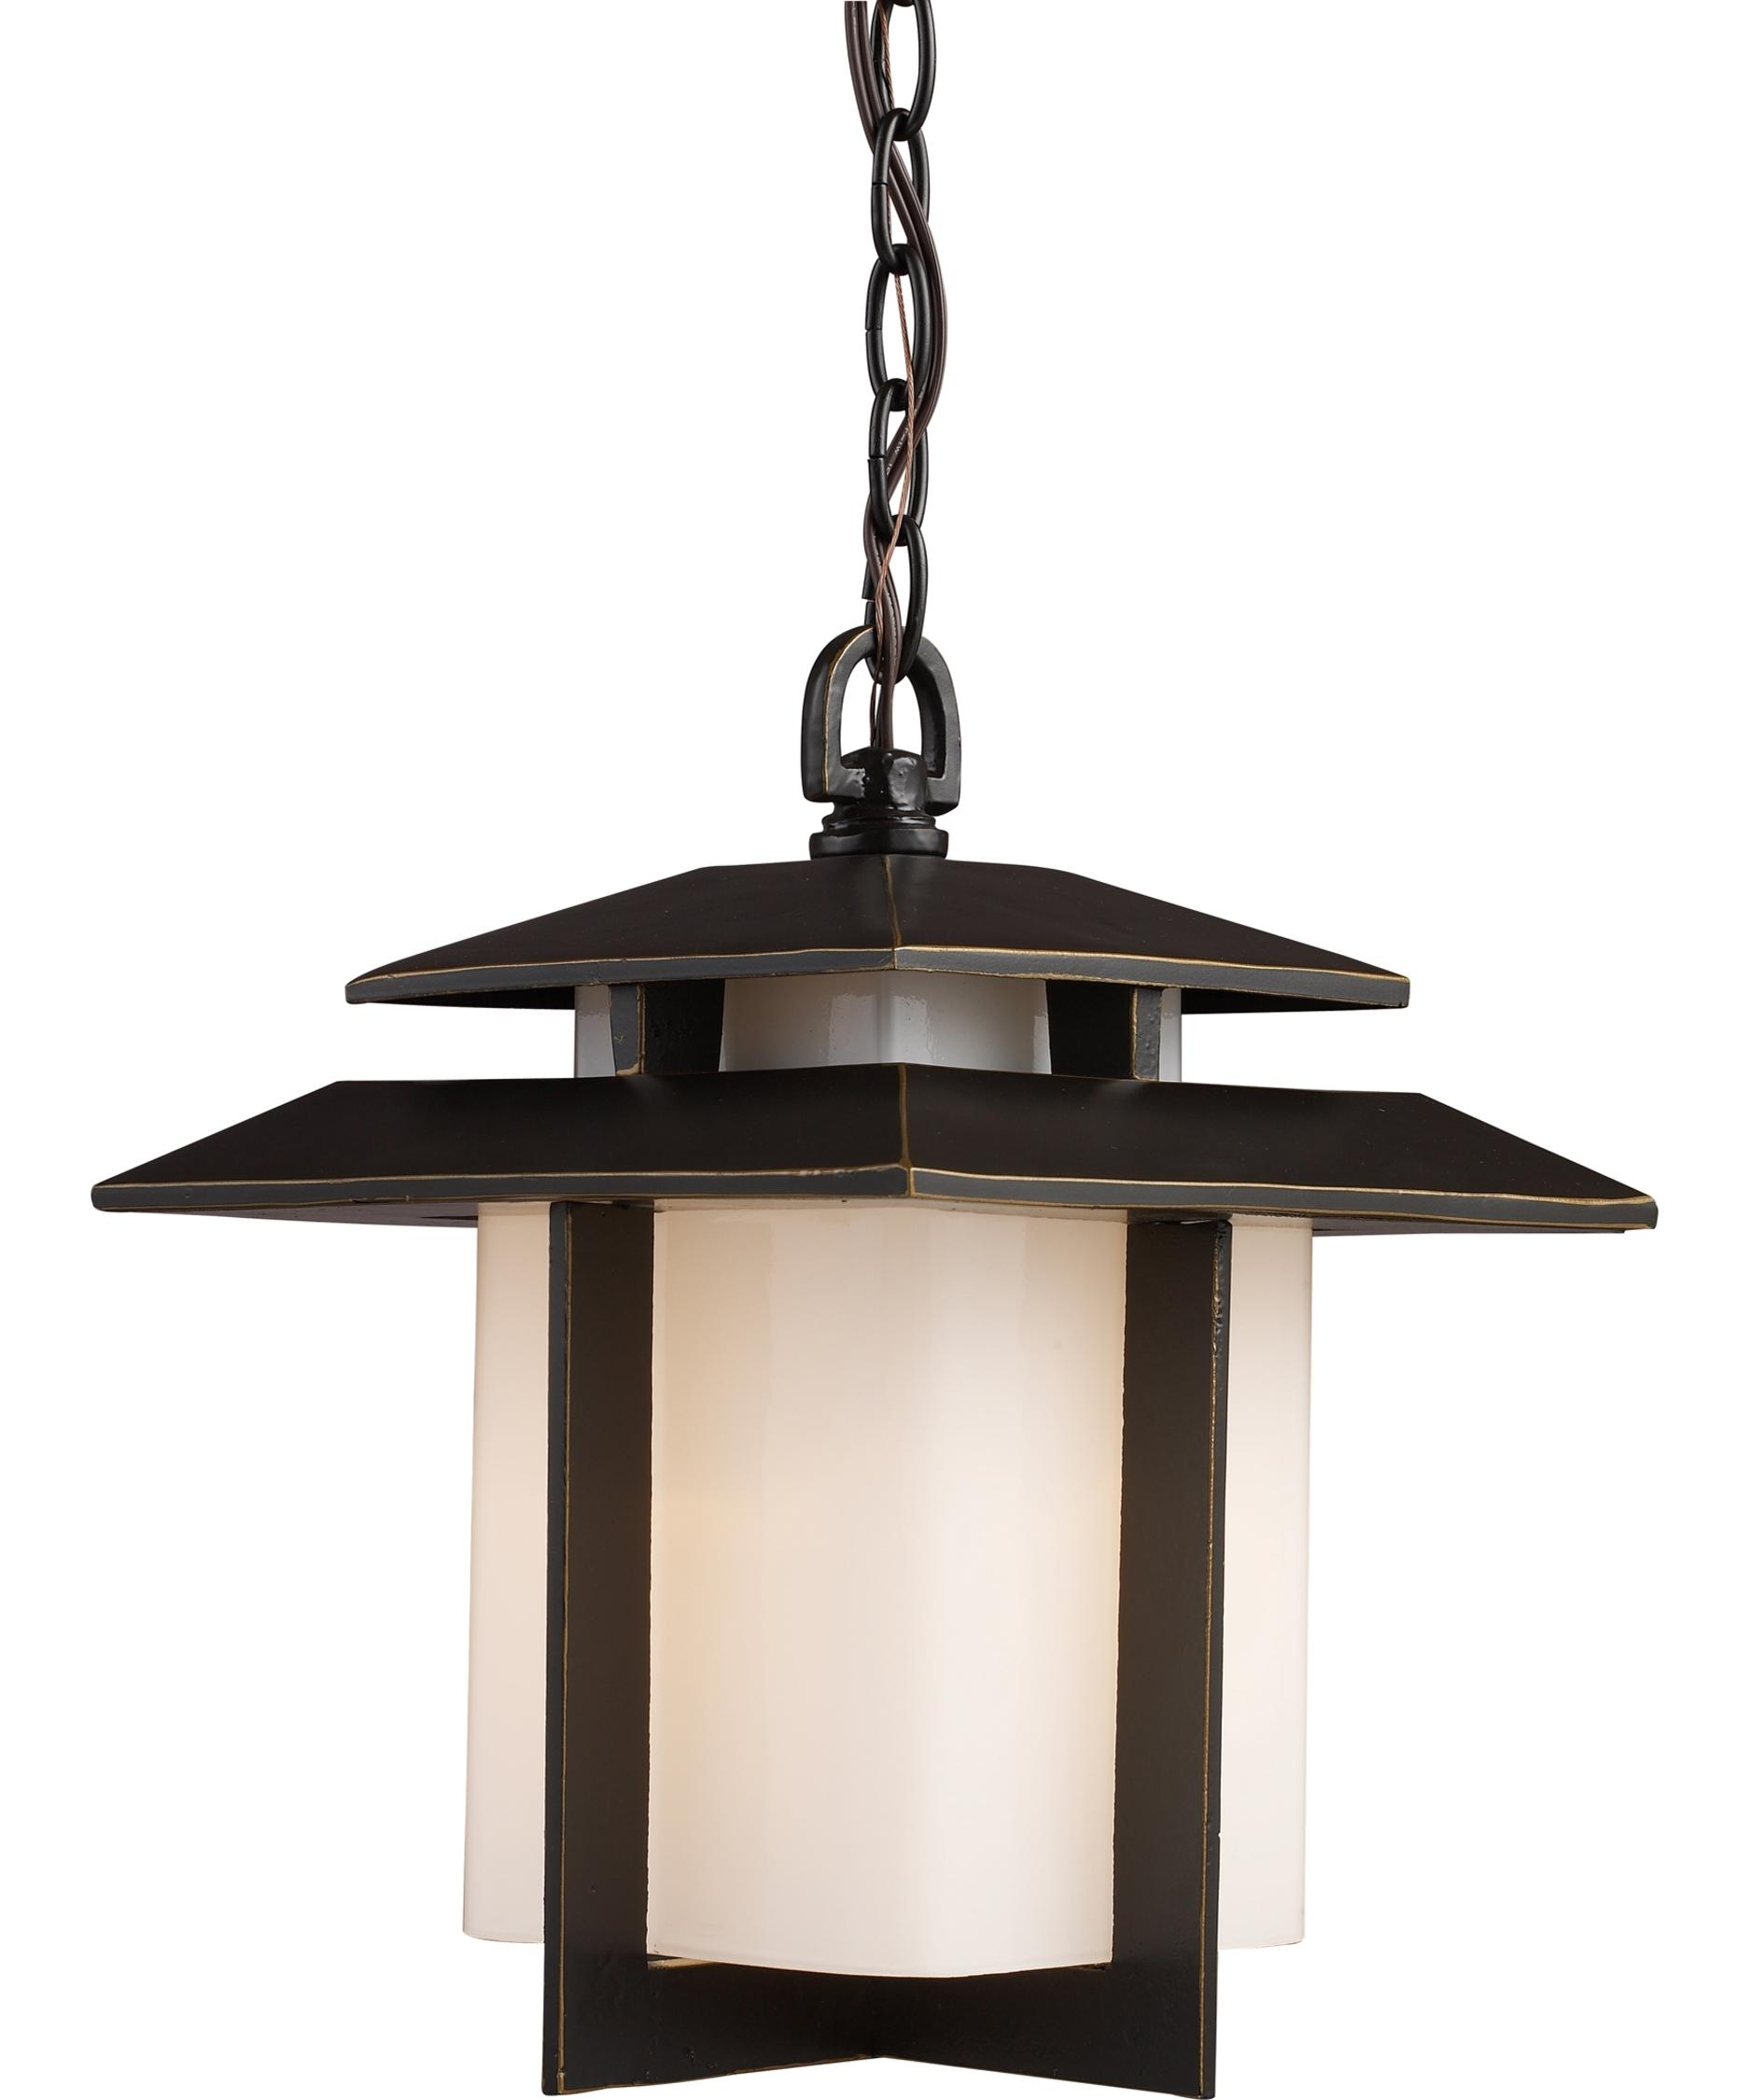 Light : Outdoor Lighting Ideas Without Electricity Exterior Fixtures In Outdoor Hanging Lanterns At Lowes (#3 of 15)